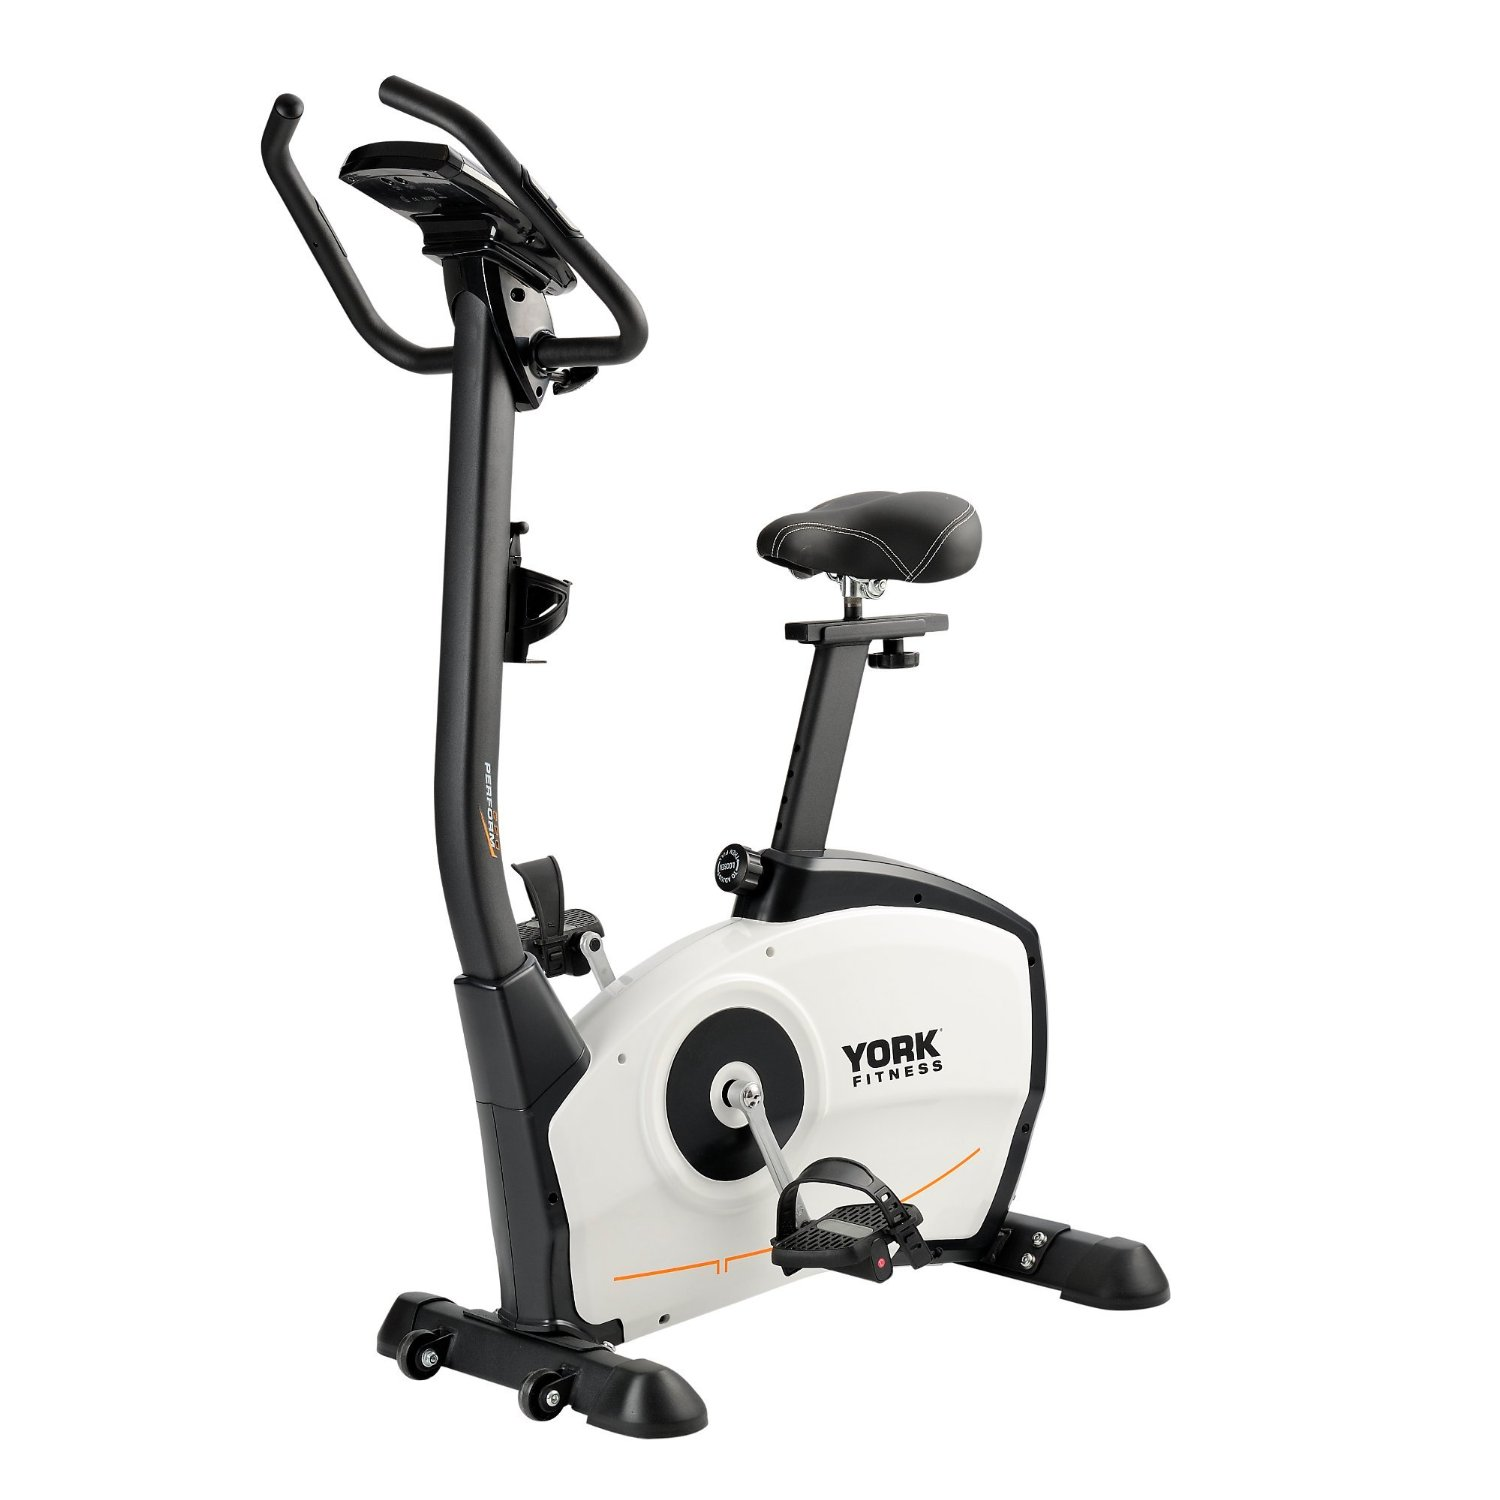 York Perform 220 Exercise Bike Review